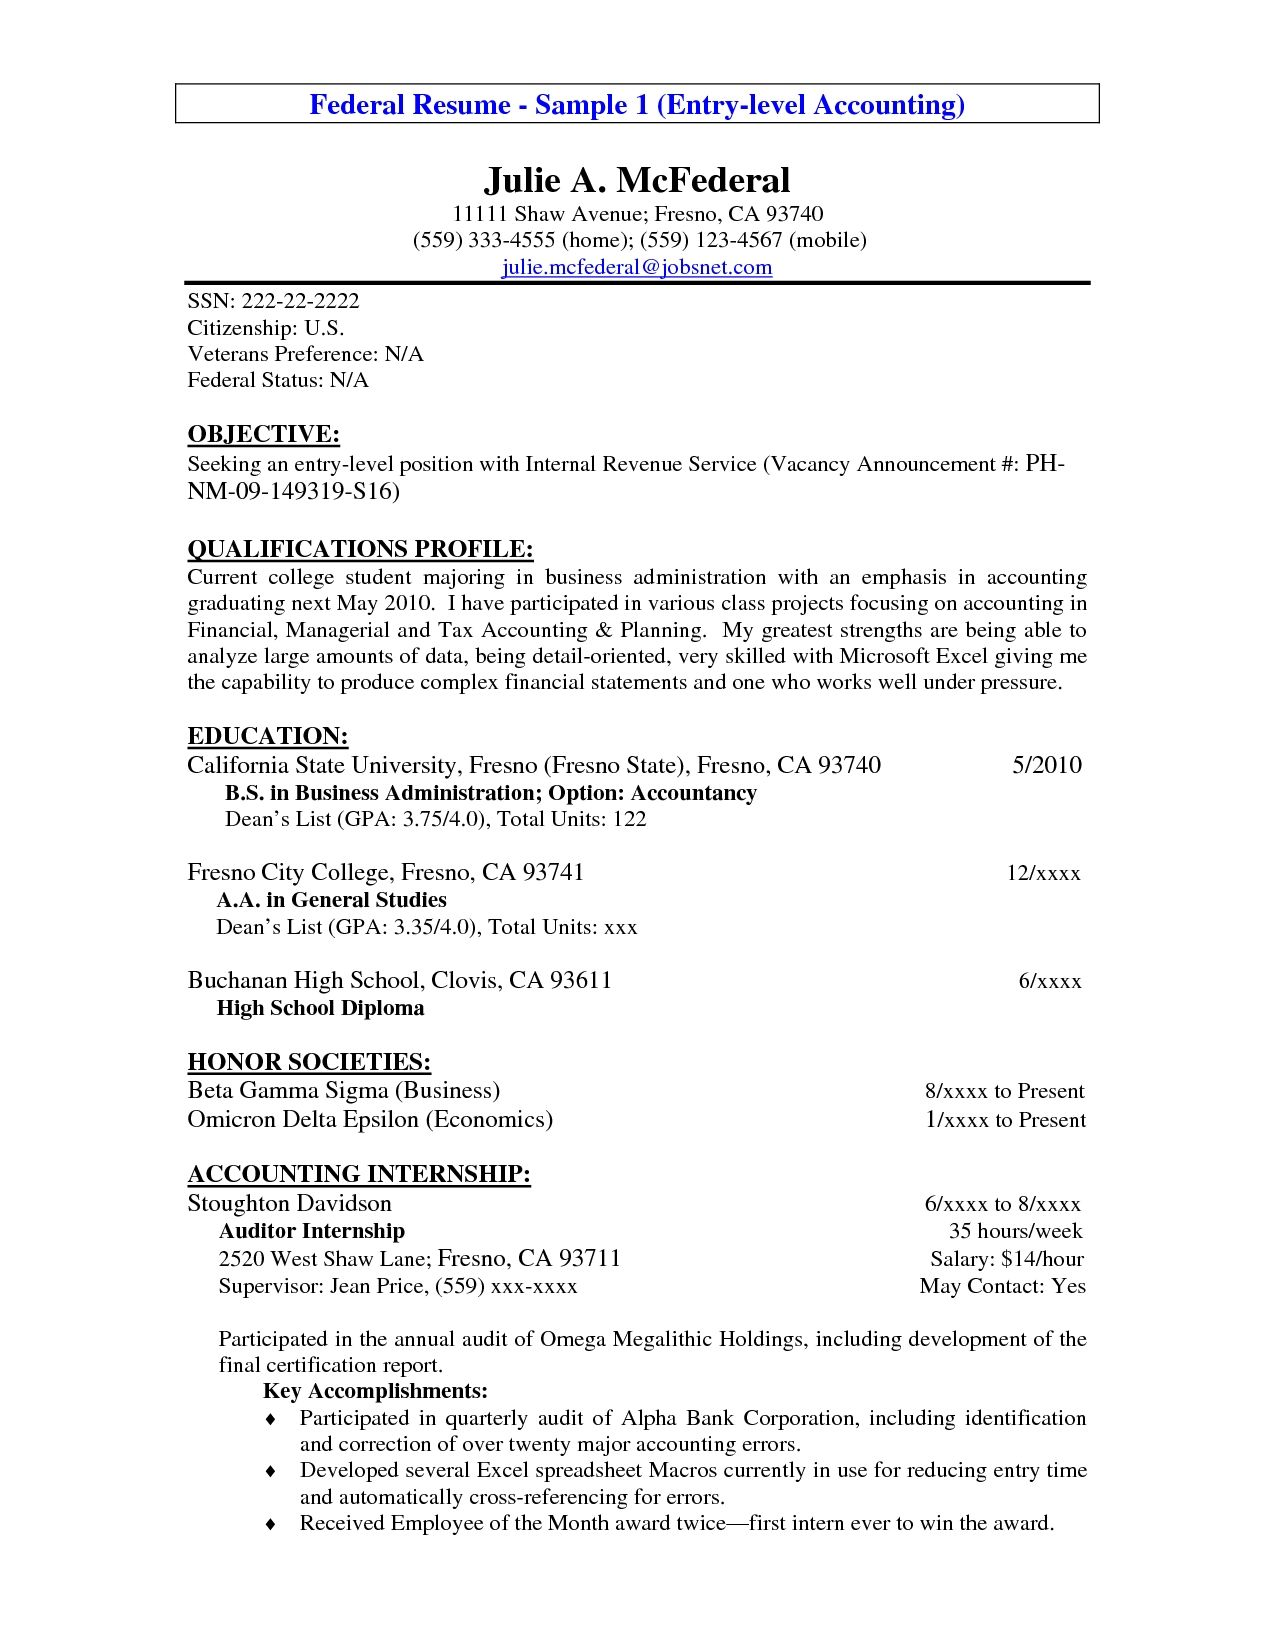 entry level resume example entry level accounting resume sample gallery photos - Sample Entry Level Resume Templates